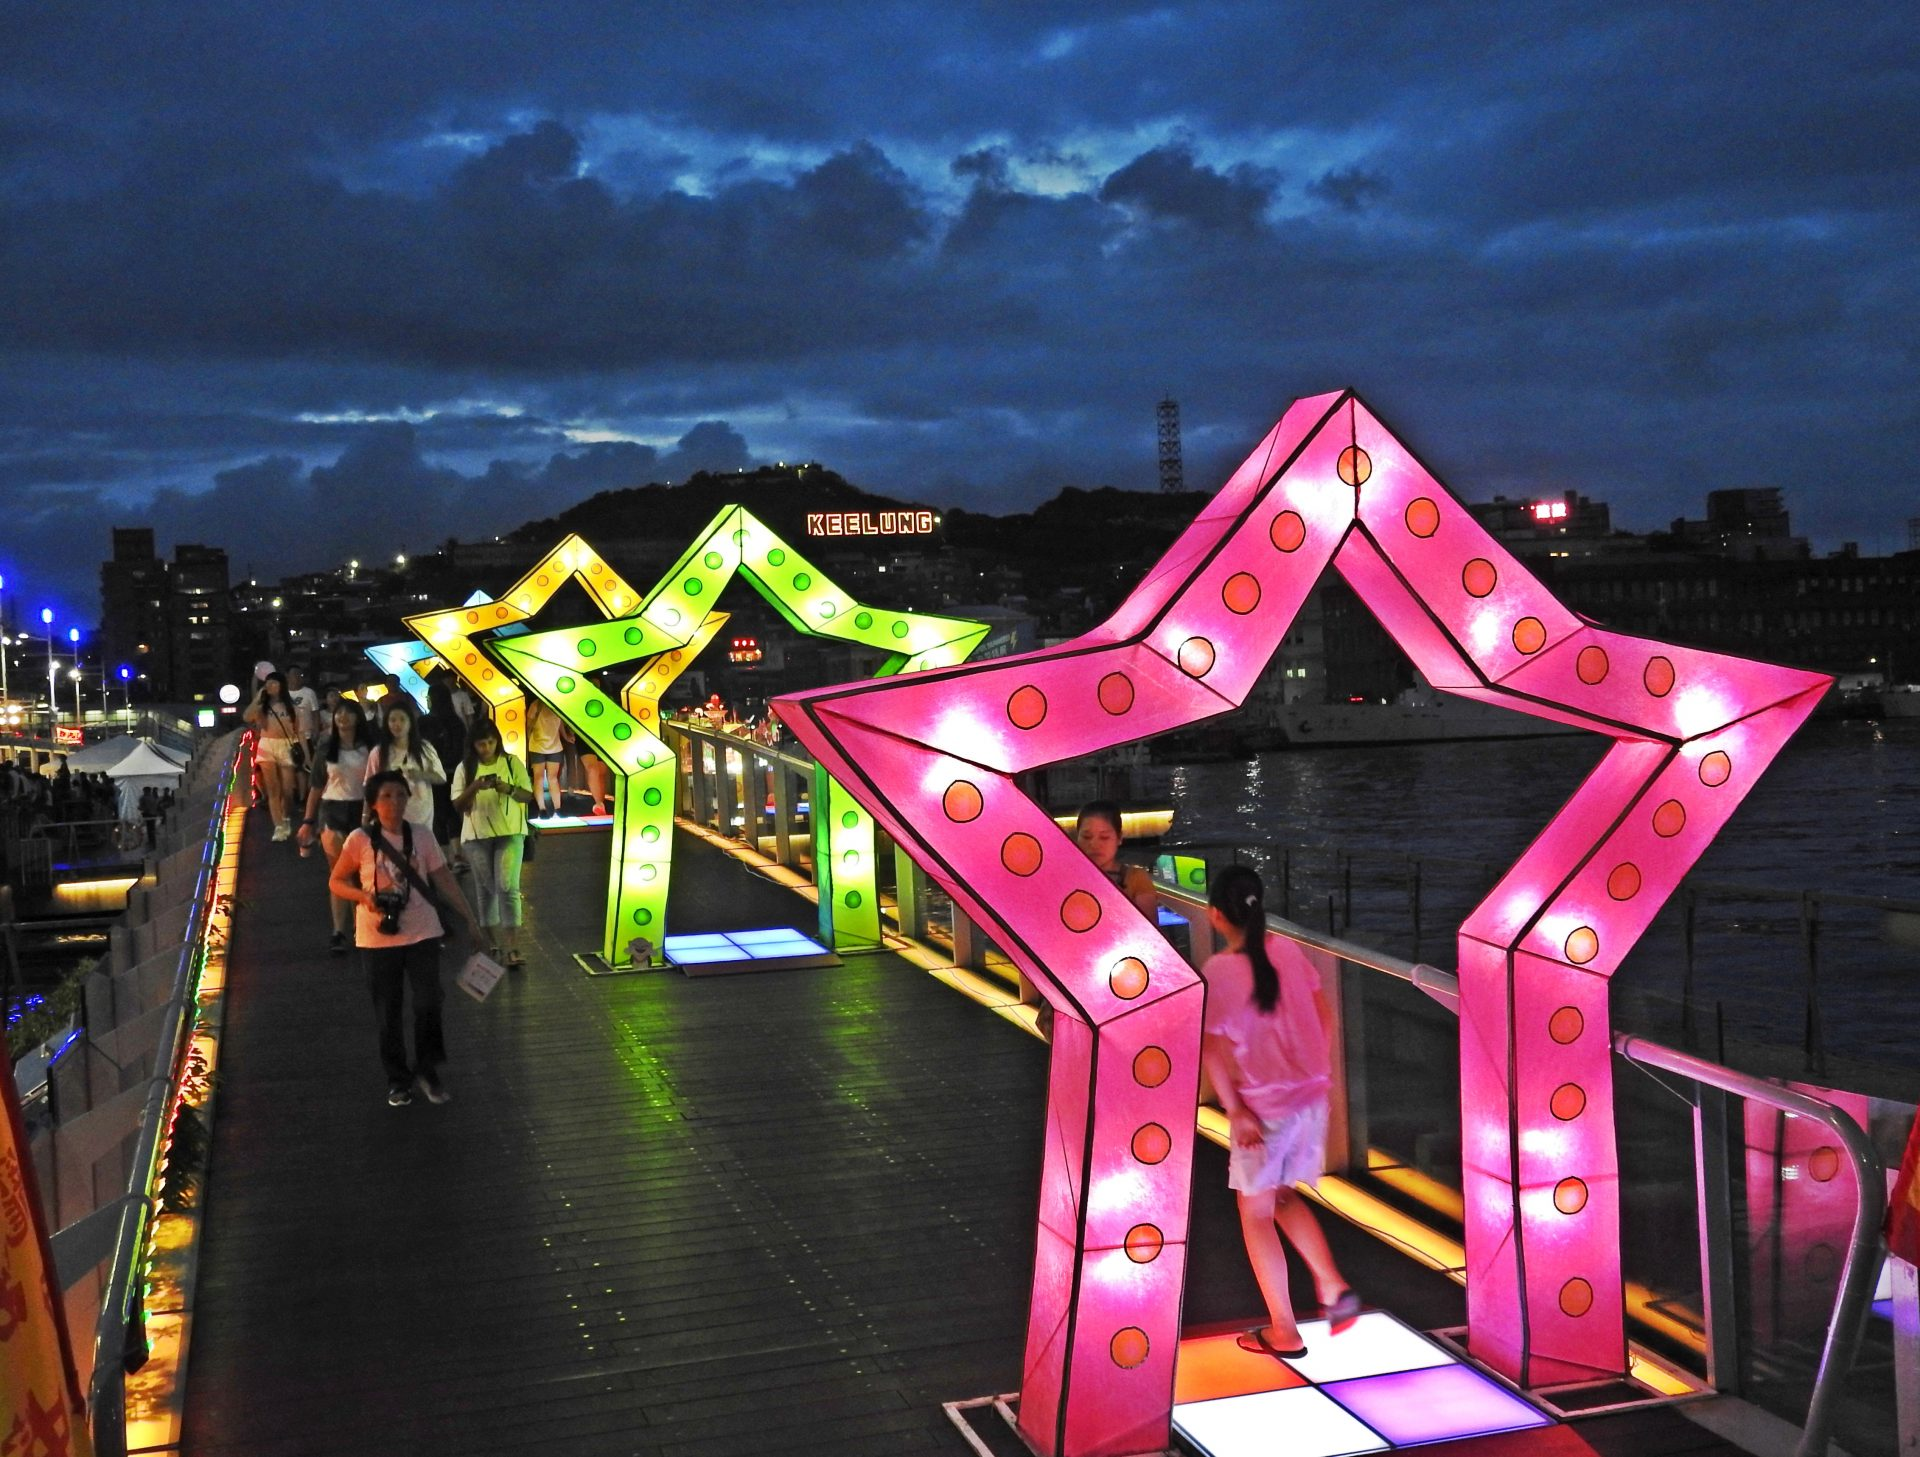 To celebrate the Keelung Ghost Festival, during the Ghost Month, the Keelung Maritime Plaza is colorfully decorated. (Image: Billy Shyu / Vision Times)